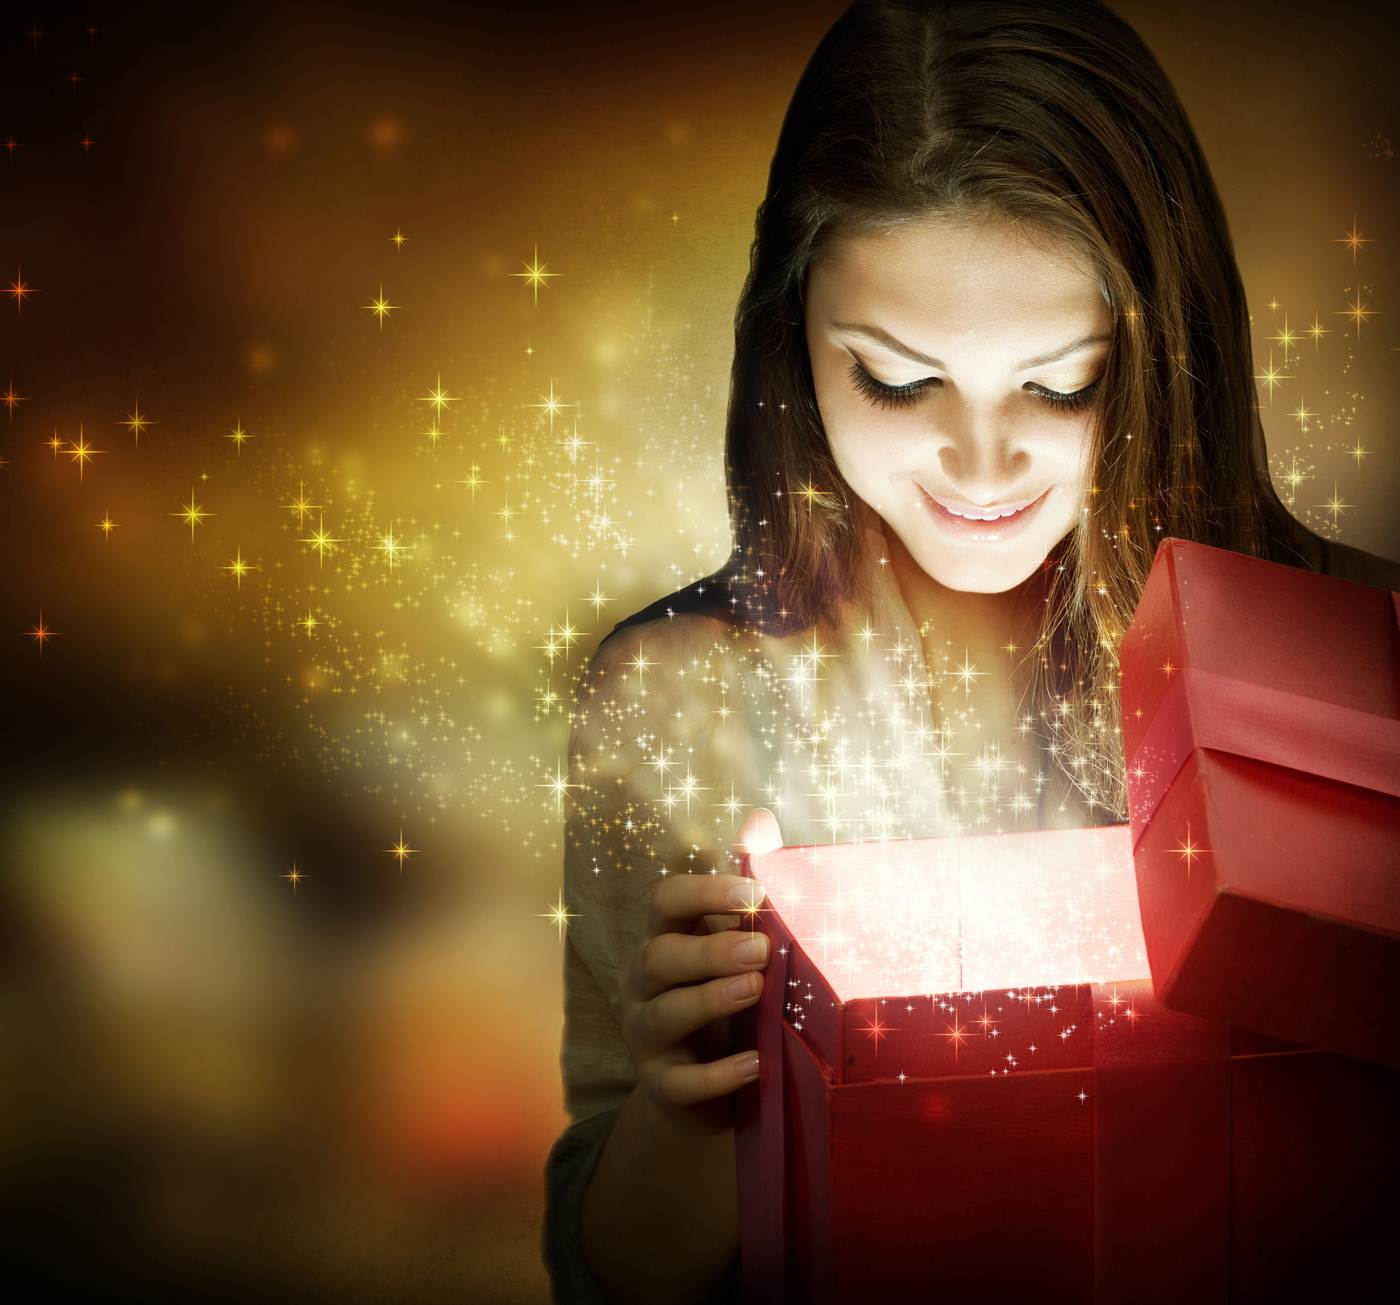 Woman opening a gift with excitement